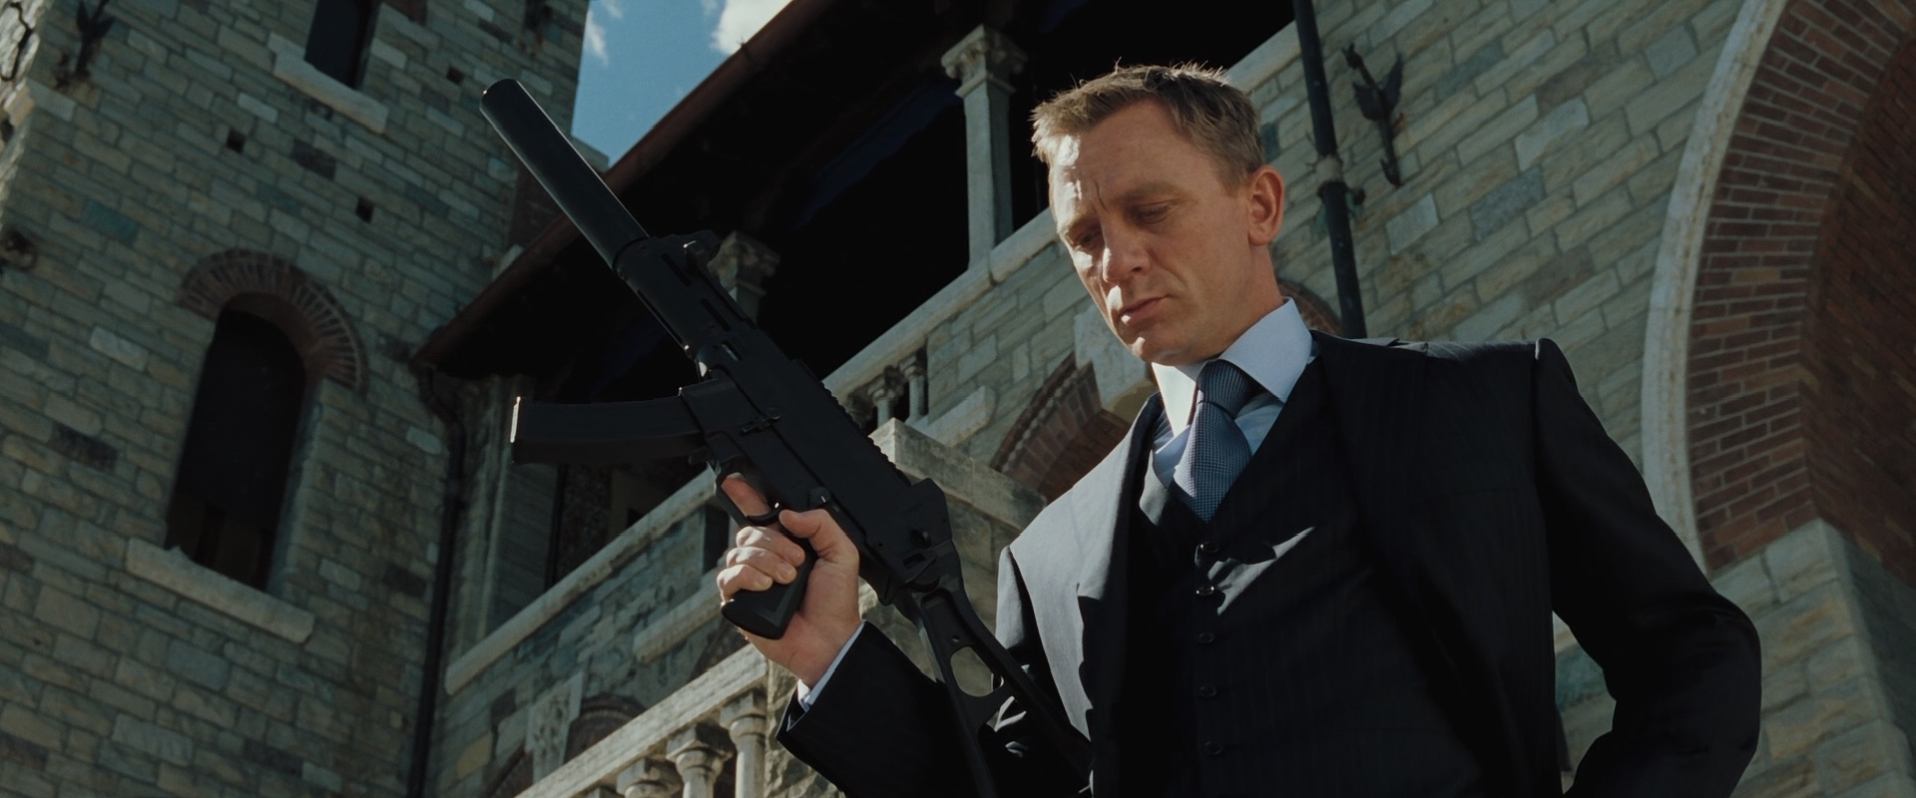 Casino royale watch online megavideo laws against gambling in india